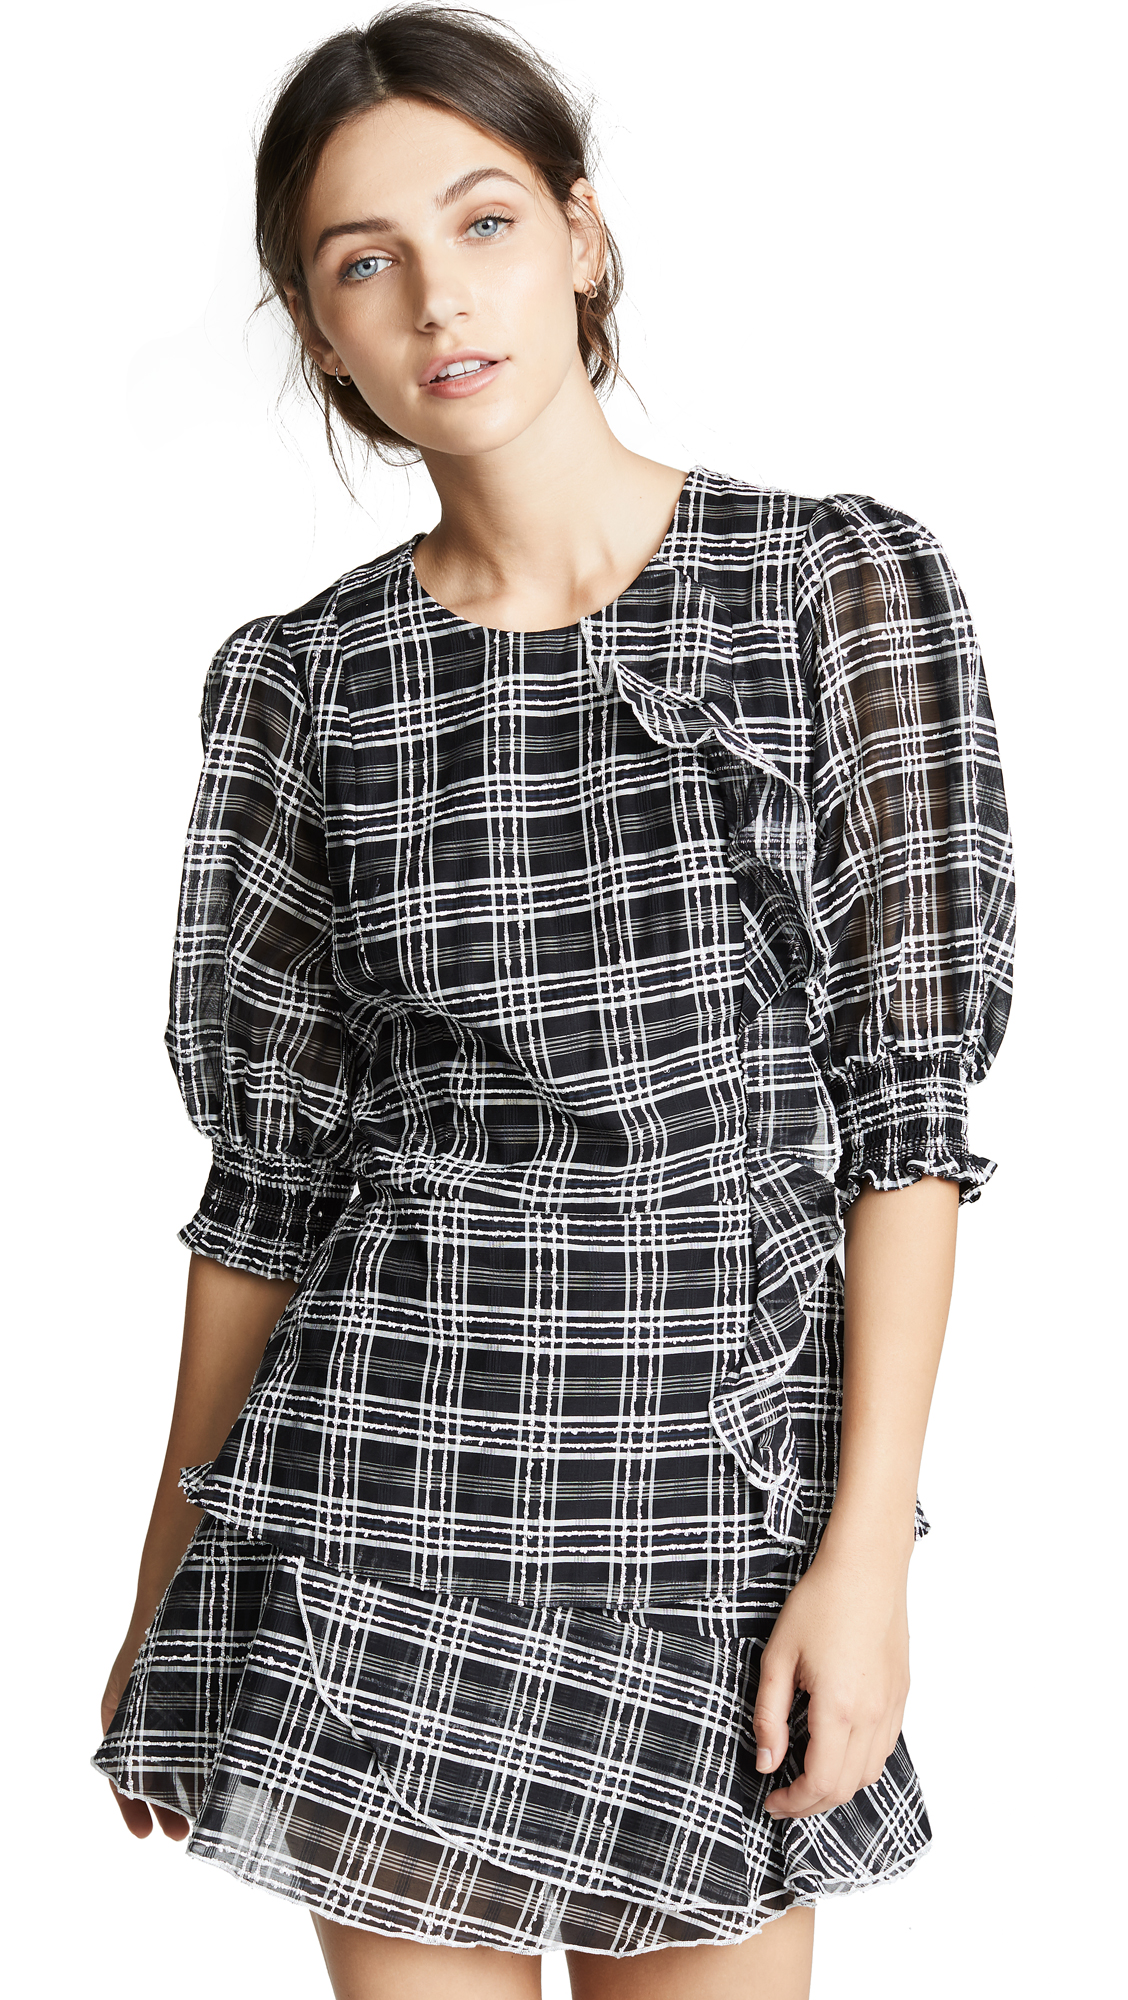 Parker Calli Blouse In Black/White